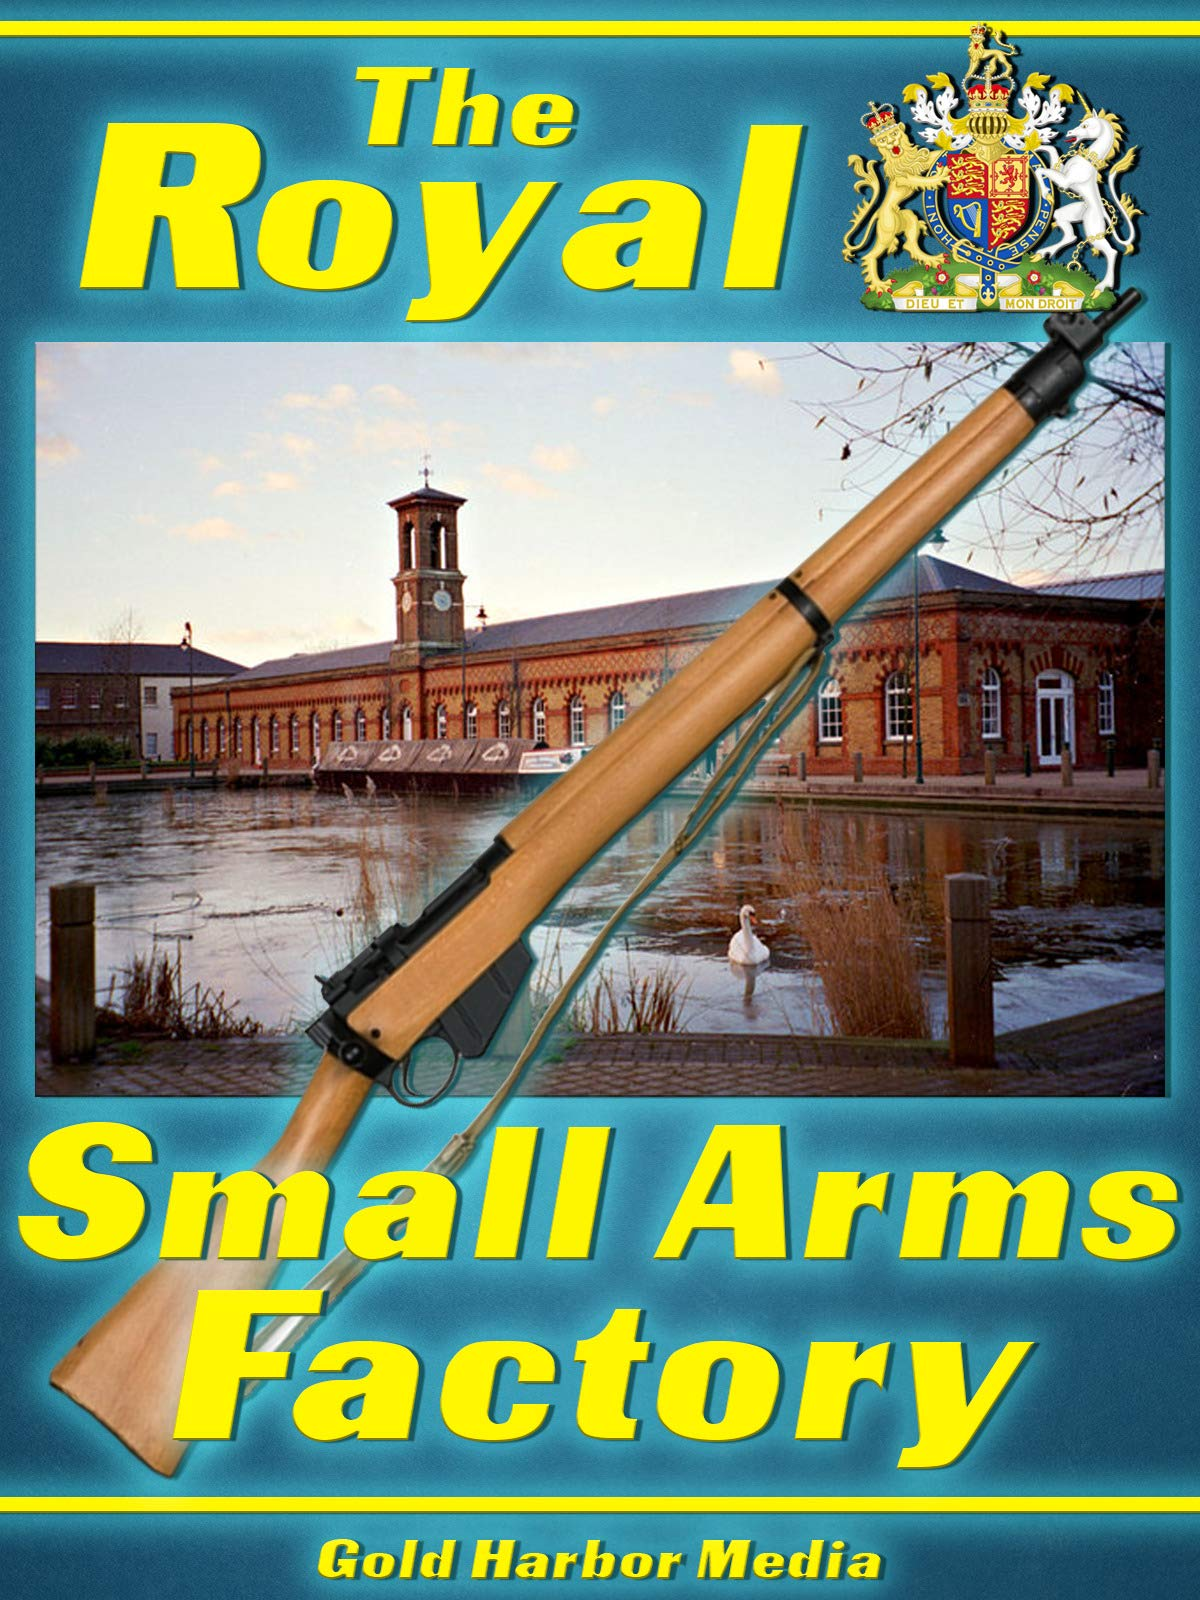 The Royal Small Arms Factory